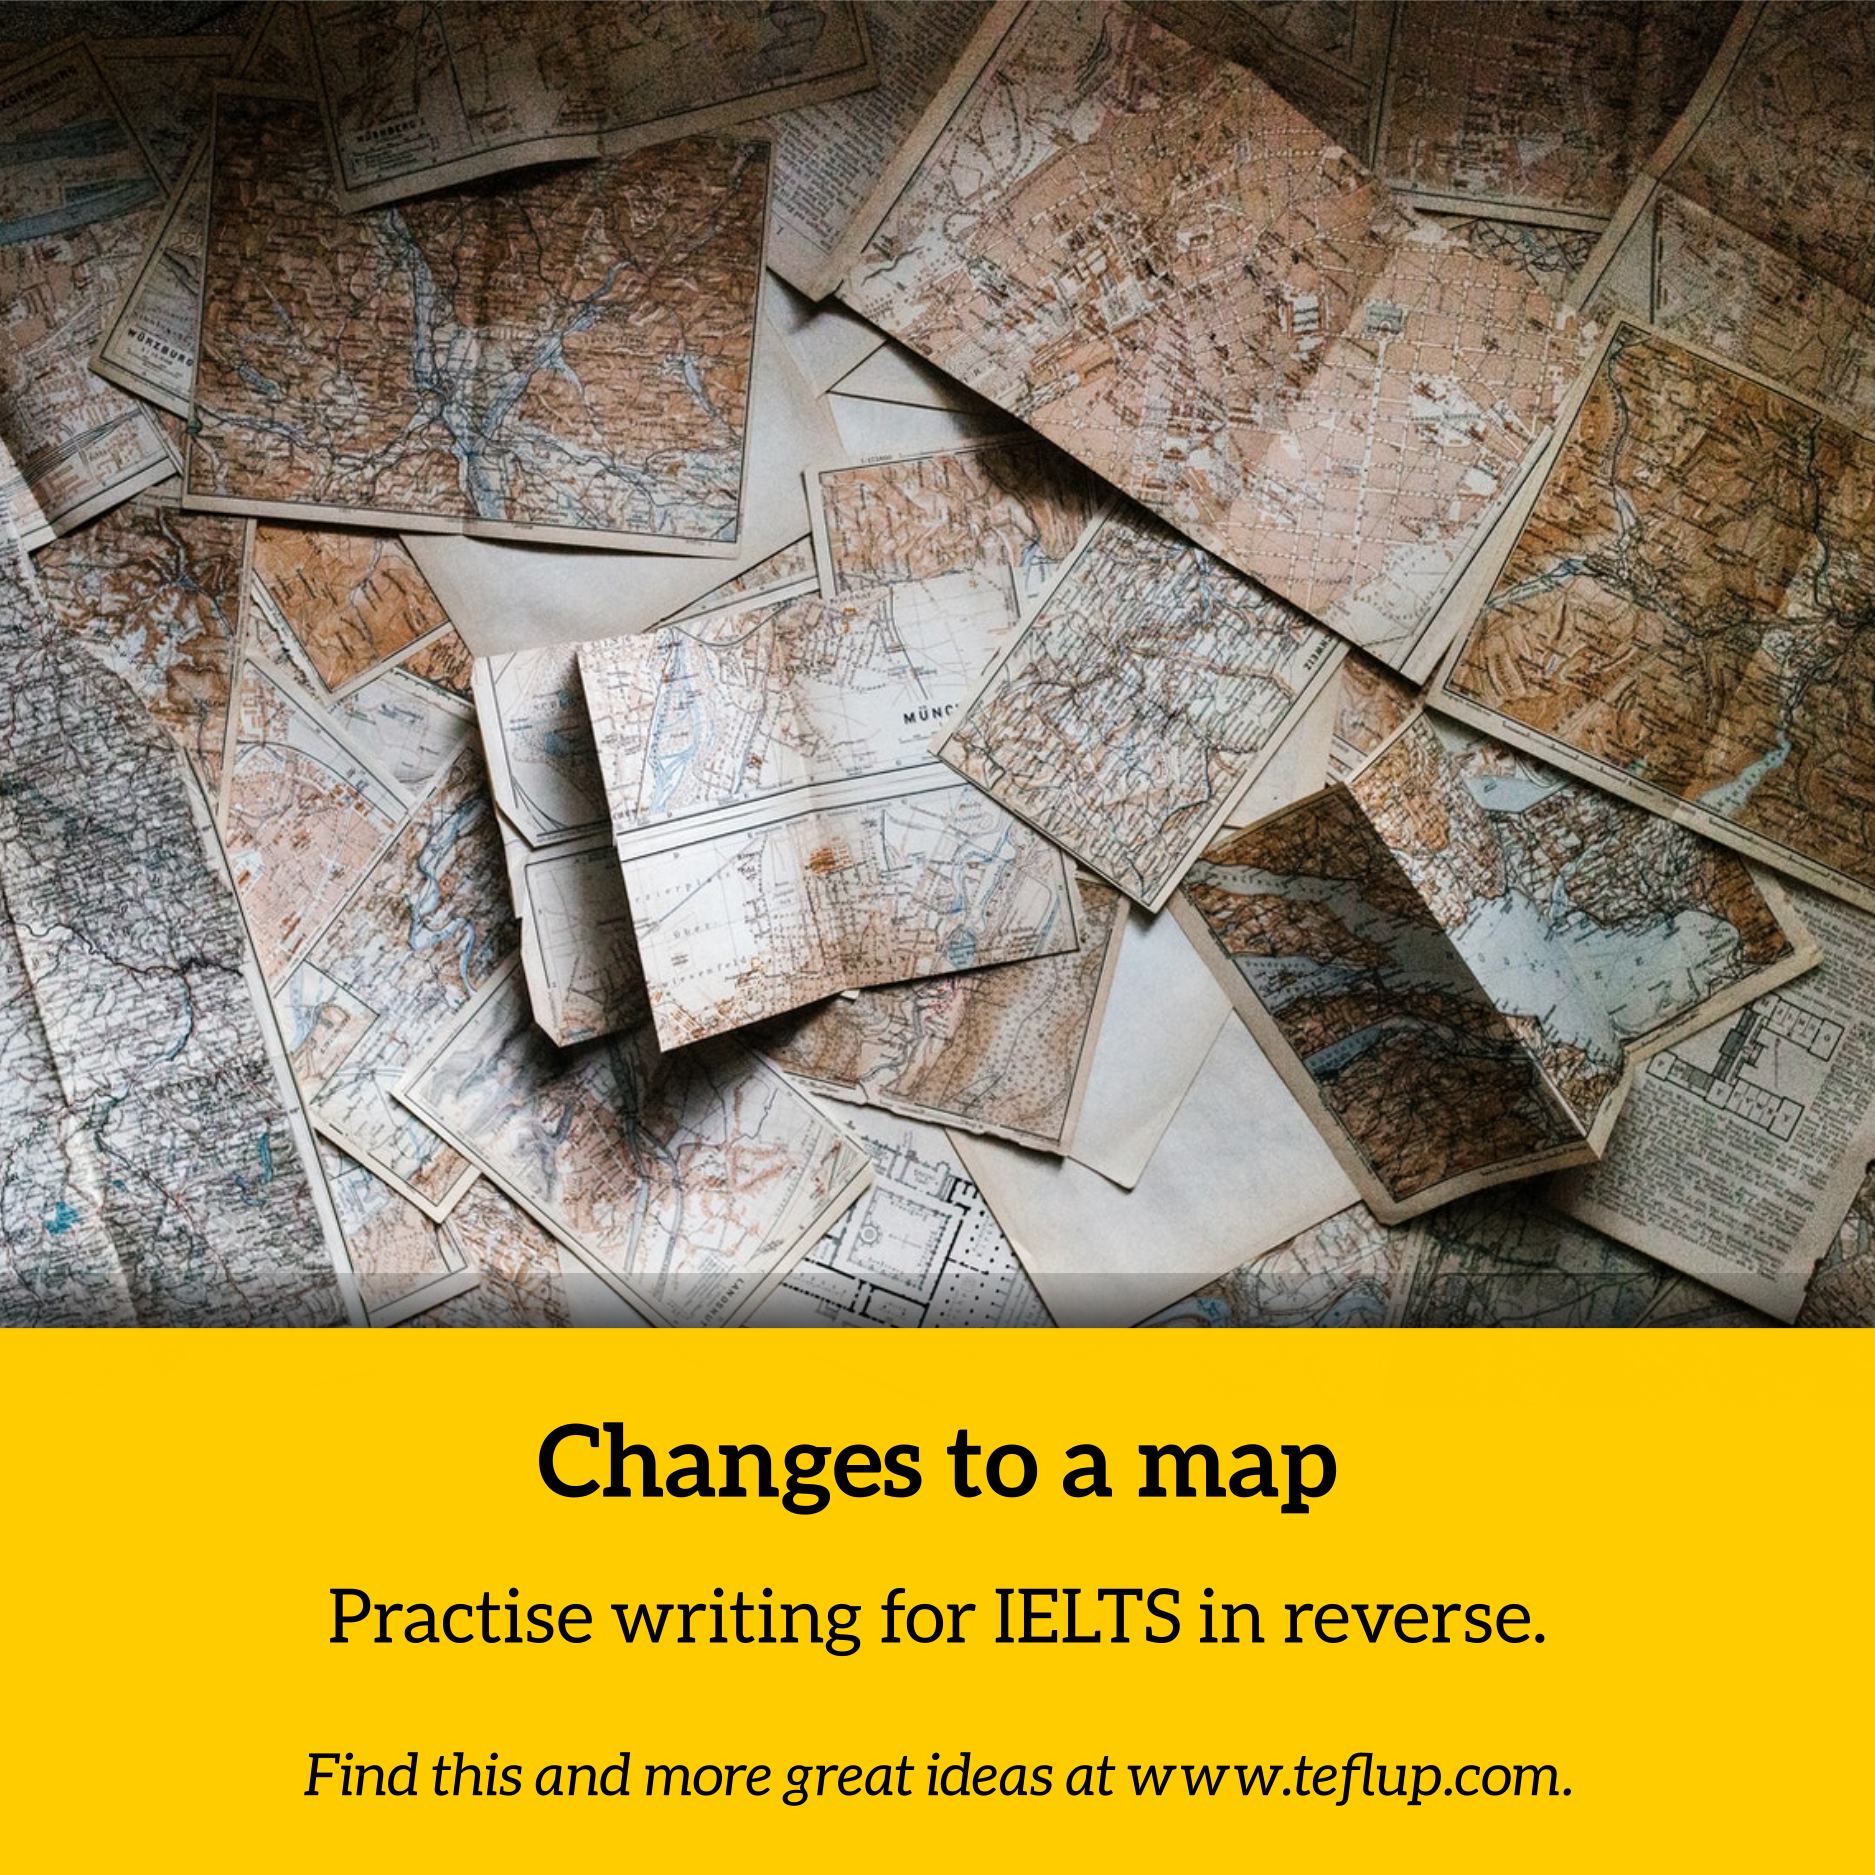 IELTS Writing changes to a map